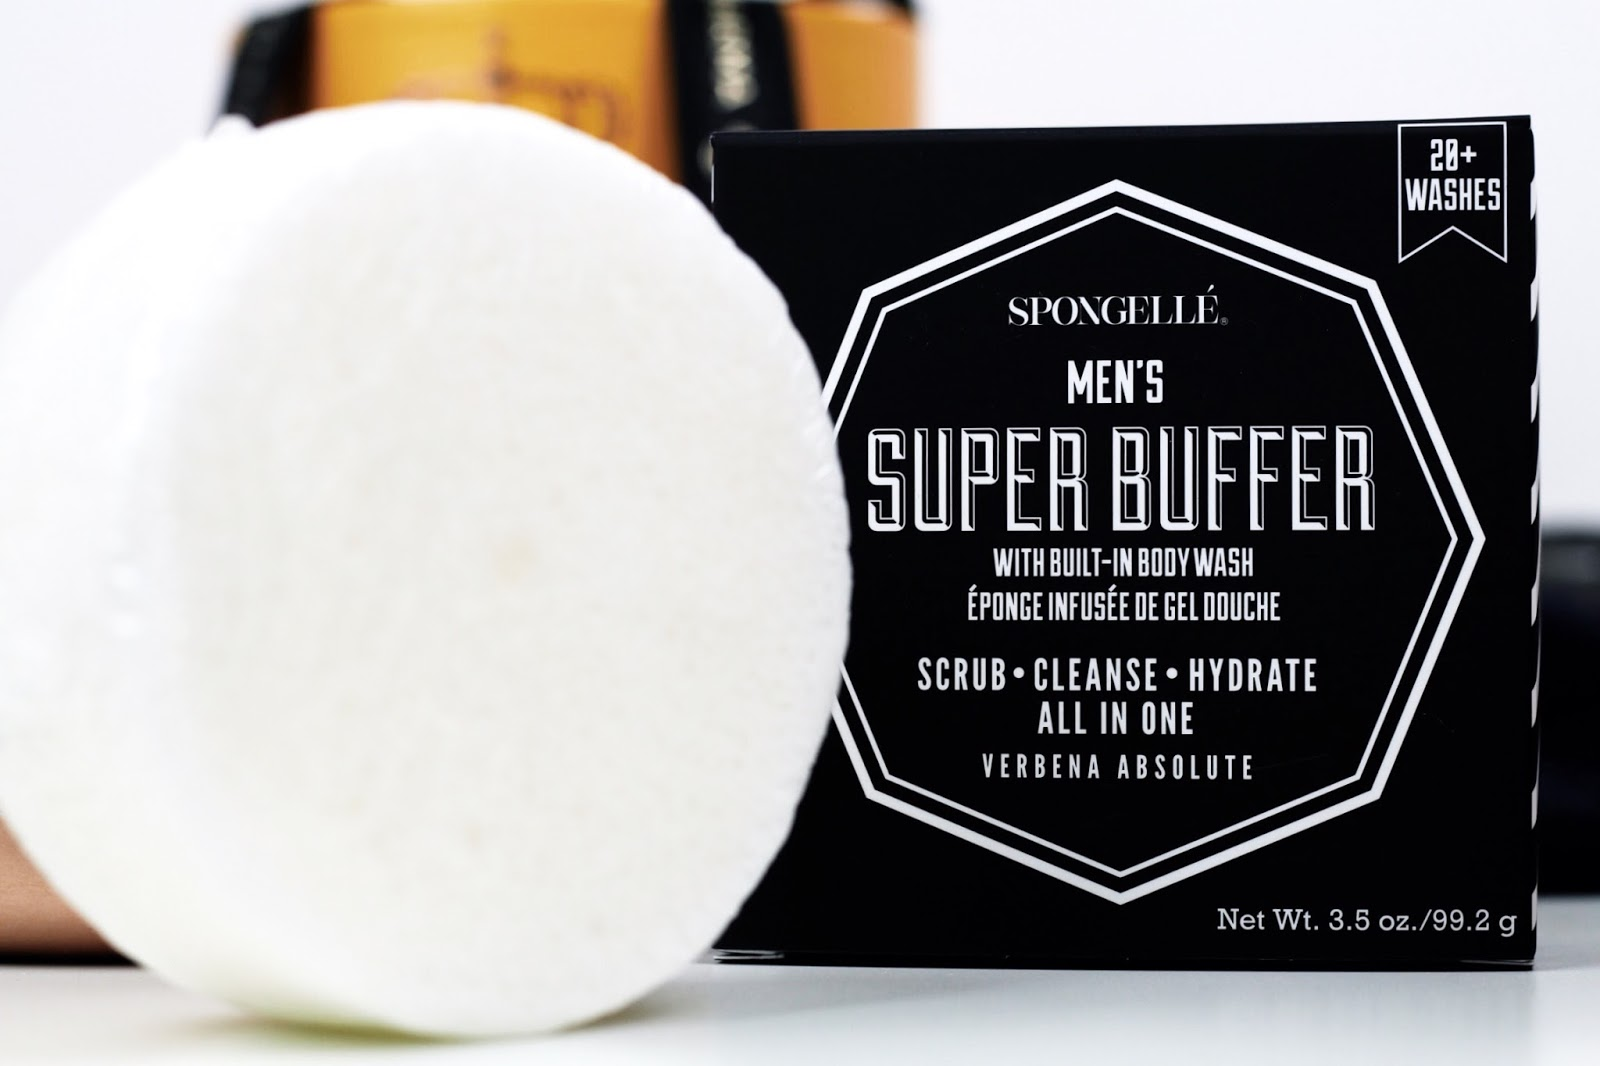 Men's Super Buffer by Spongellé